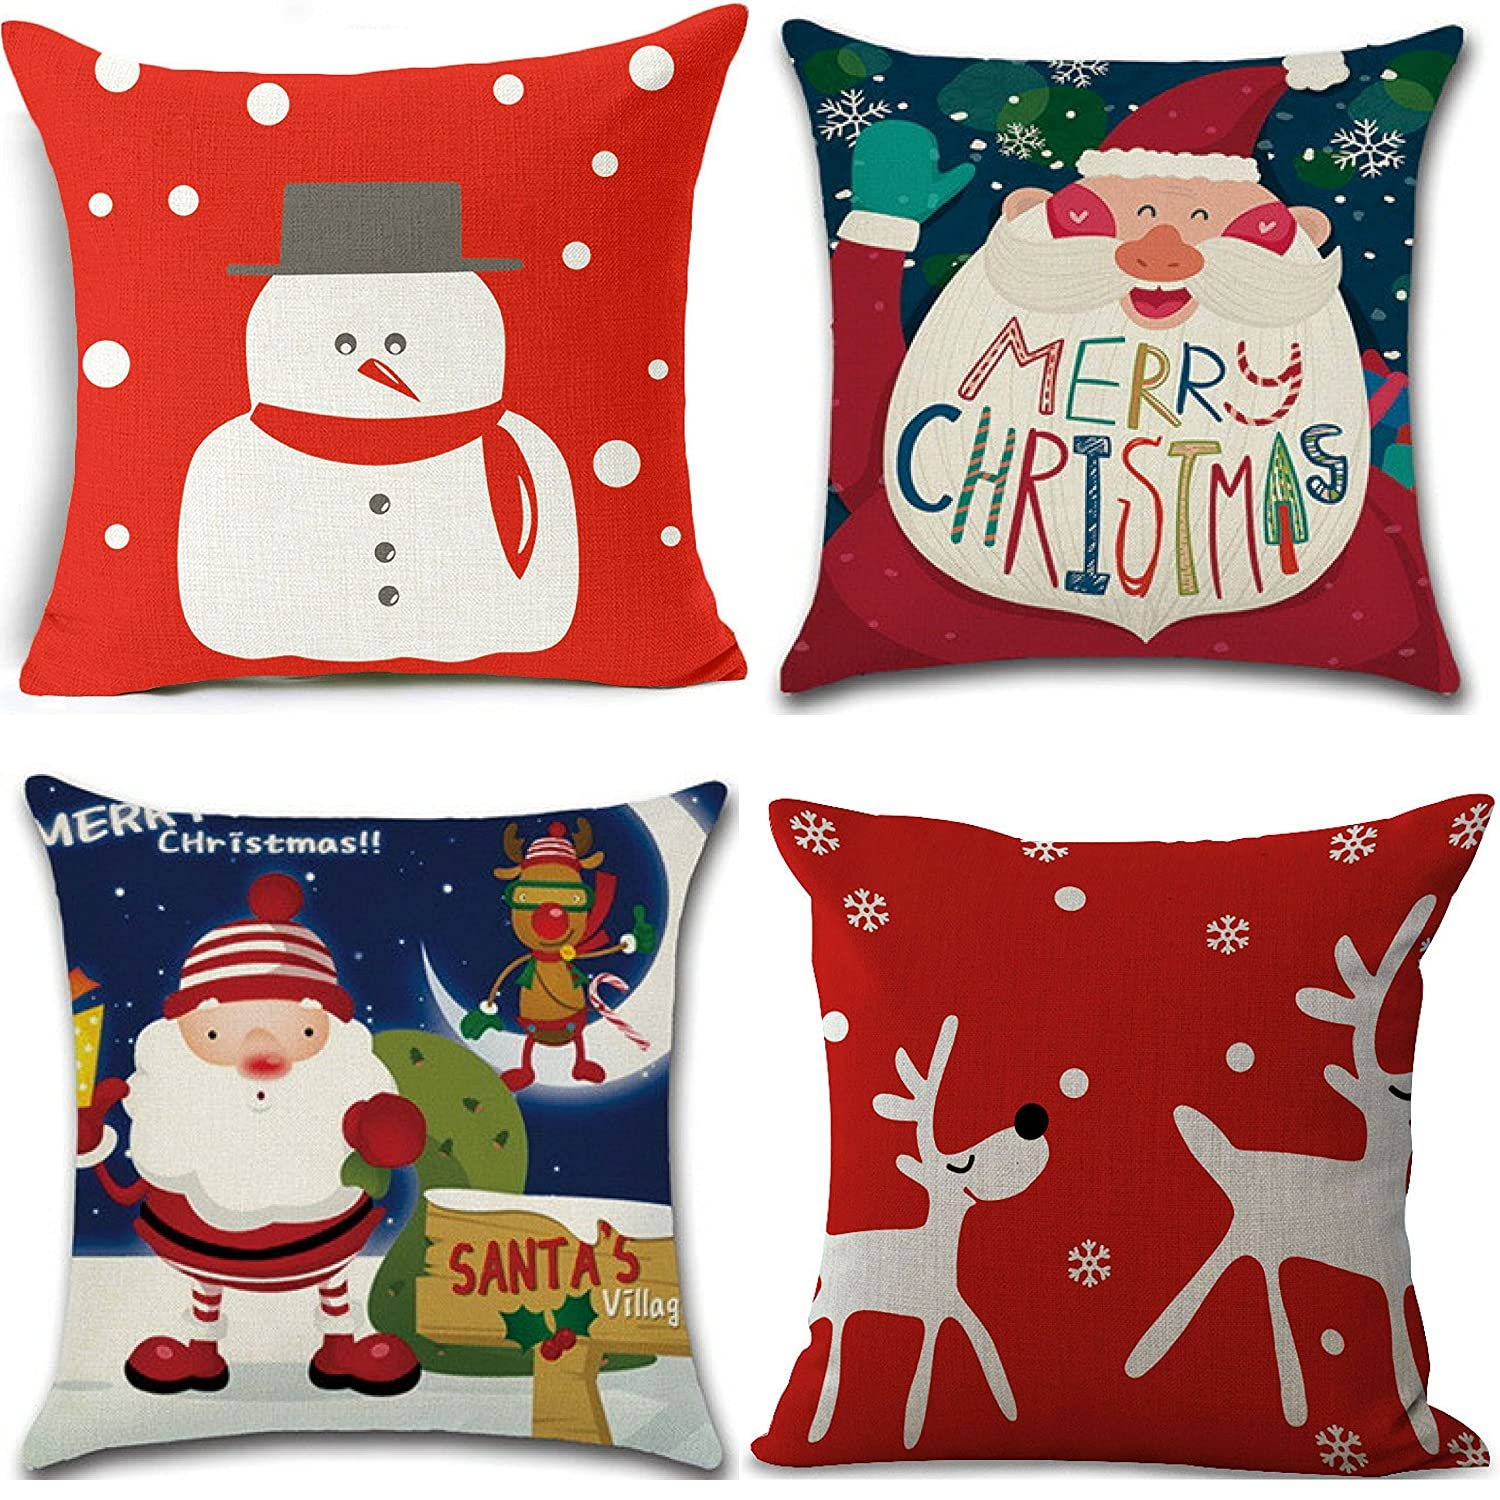 "Christmas Pillow Covers Set of 4, 18"" x 18"" Holiday Throw Pillows, Whimsical Modern Design (Snowman Reindeer, Santa"